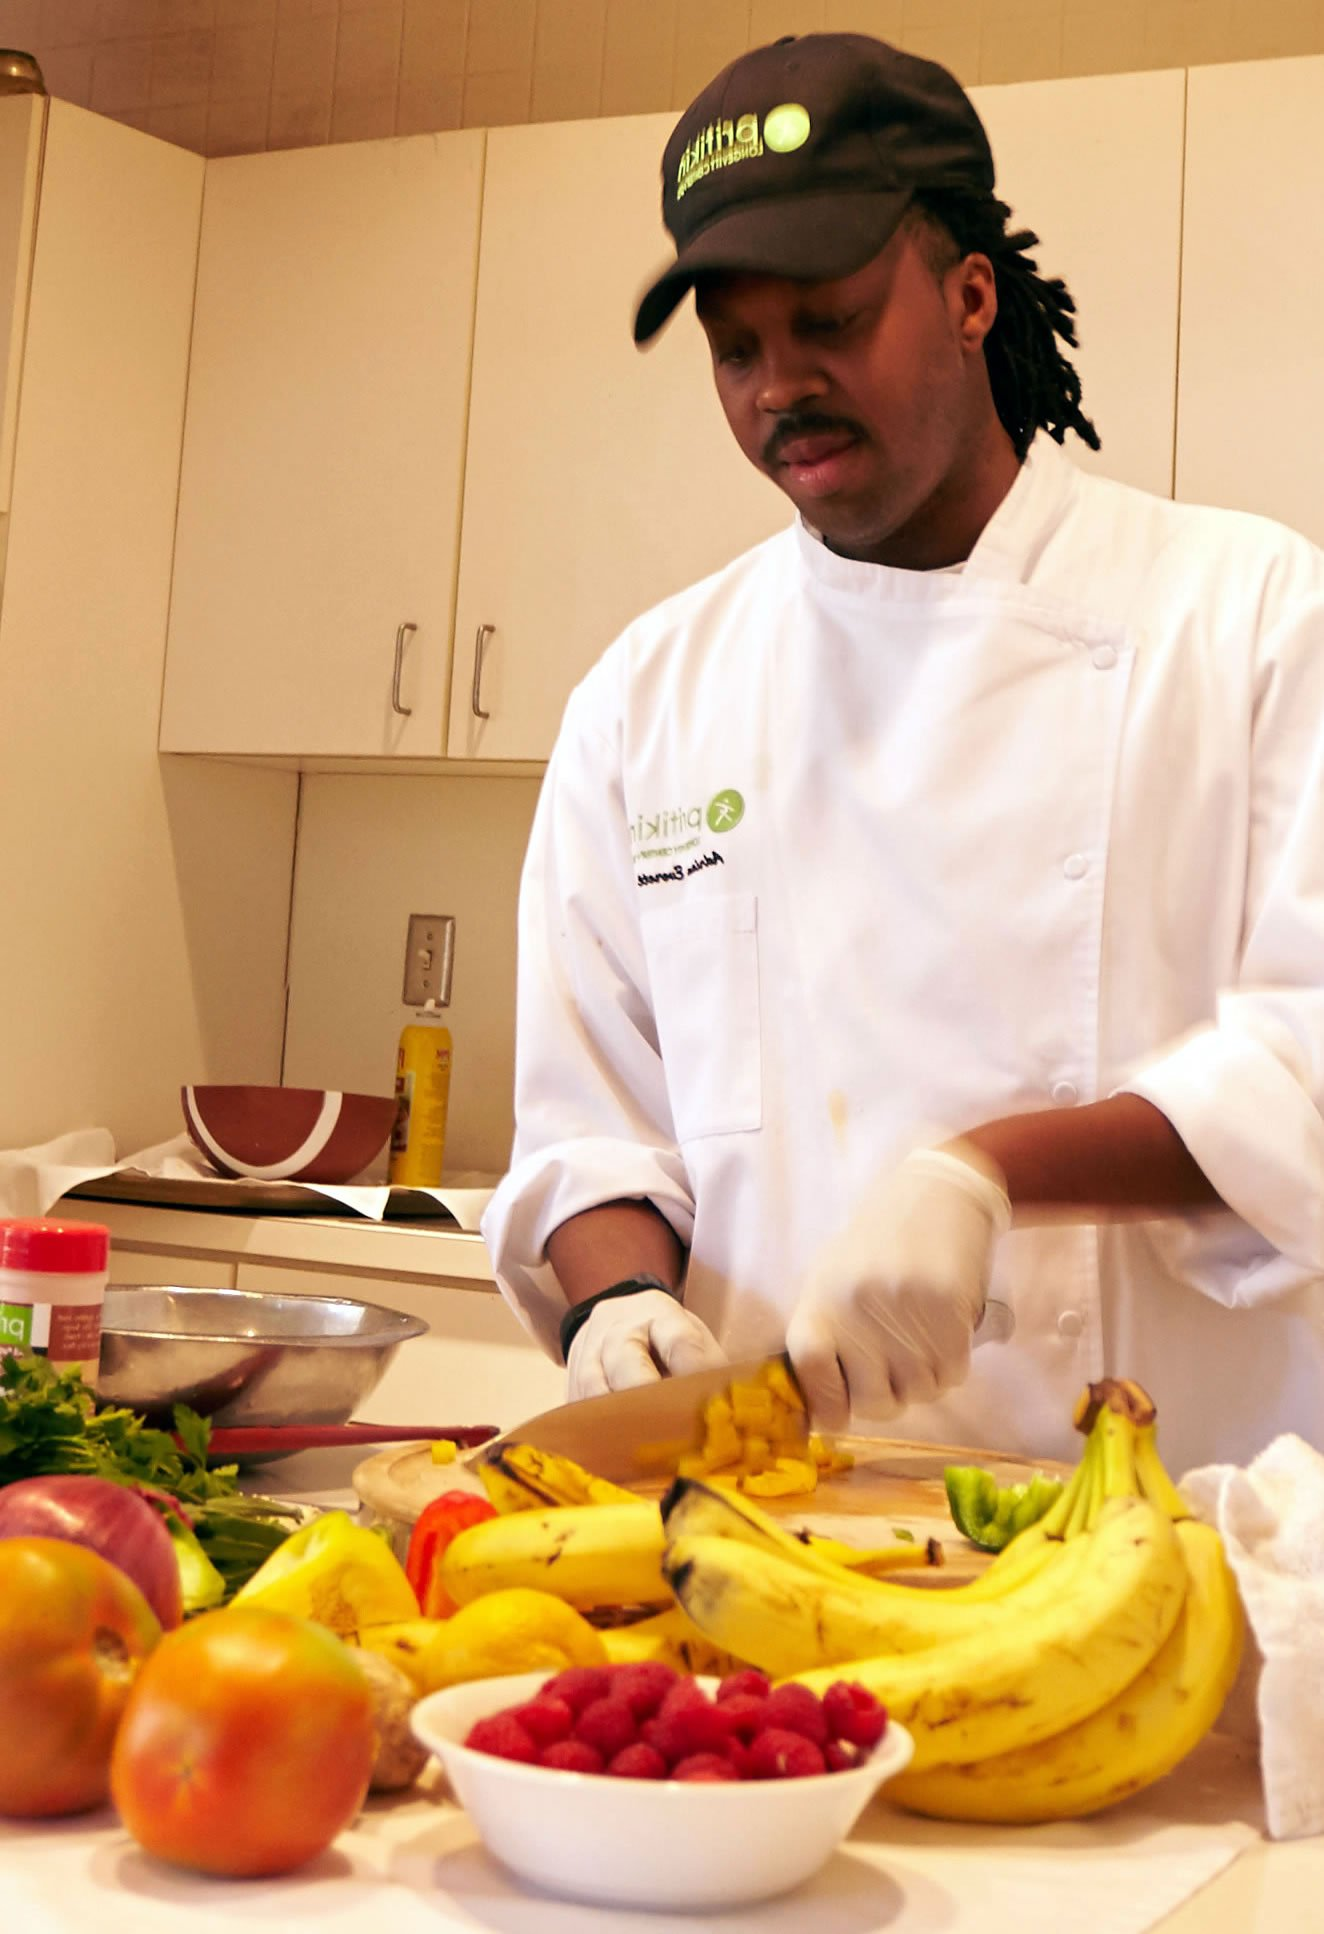 Learn About The Importance Of Diet For Your Health in Cooking School